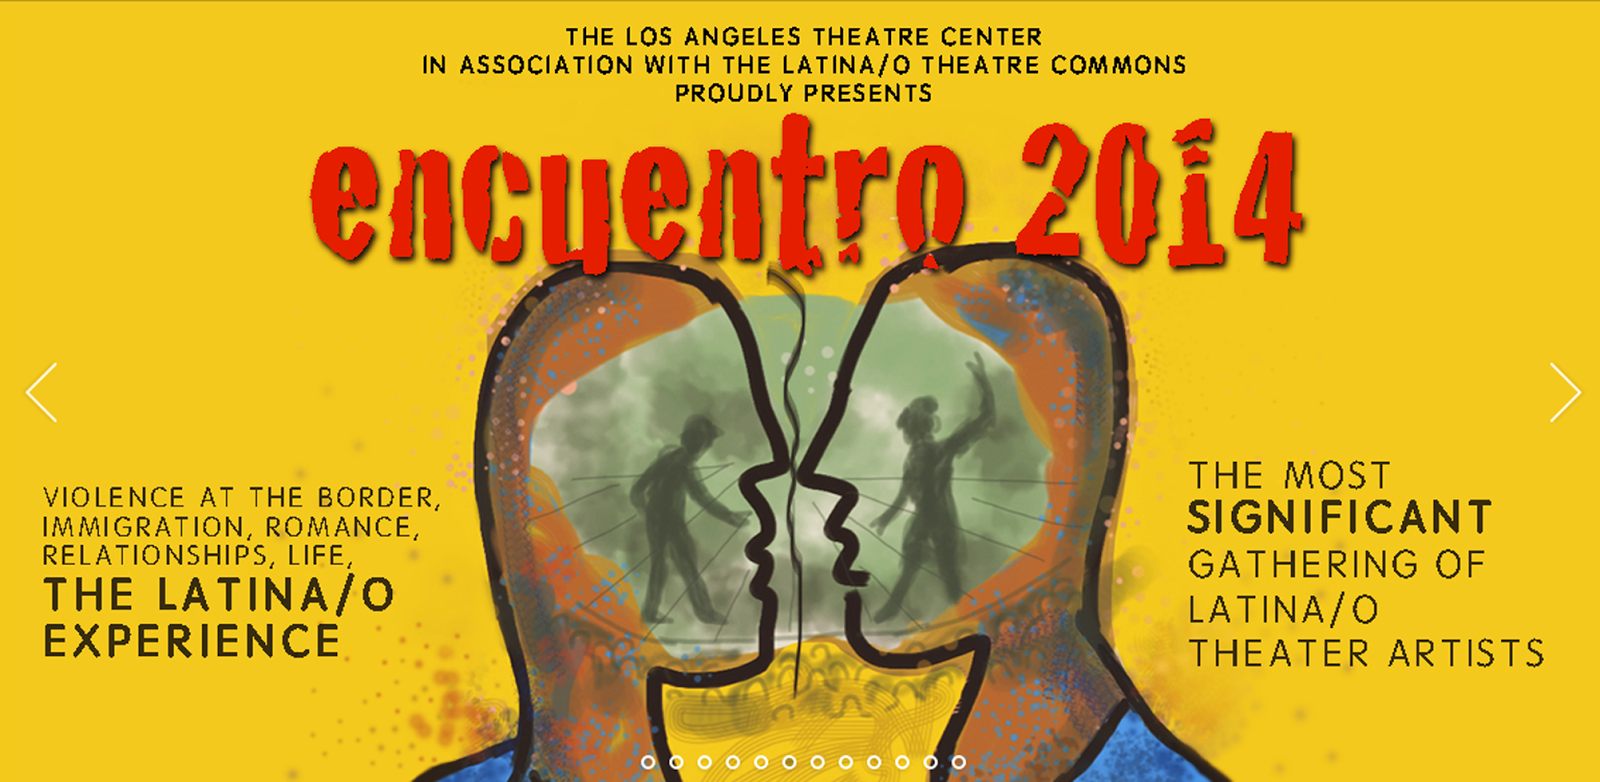 Childrens publishing blogs floricanto movement blog posts the los angeles theatre center in the heart of los angeles is the site of an historical gathering of professional raza theater companies from across the fandeluxe Images